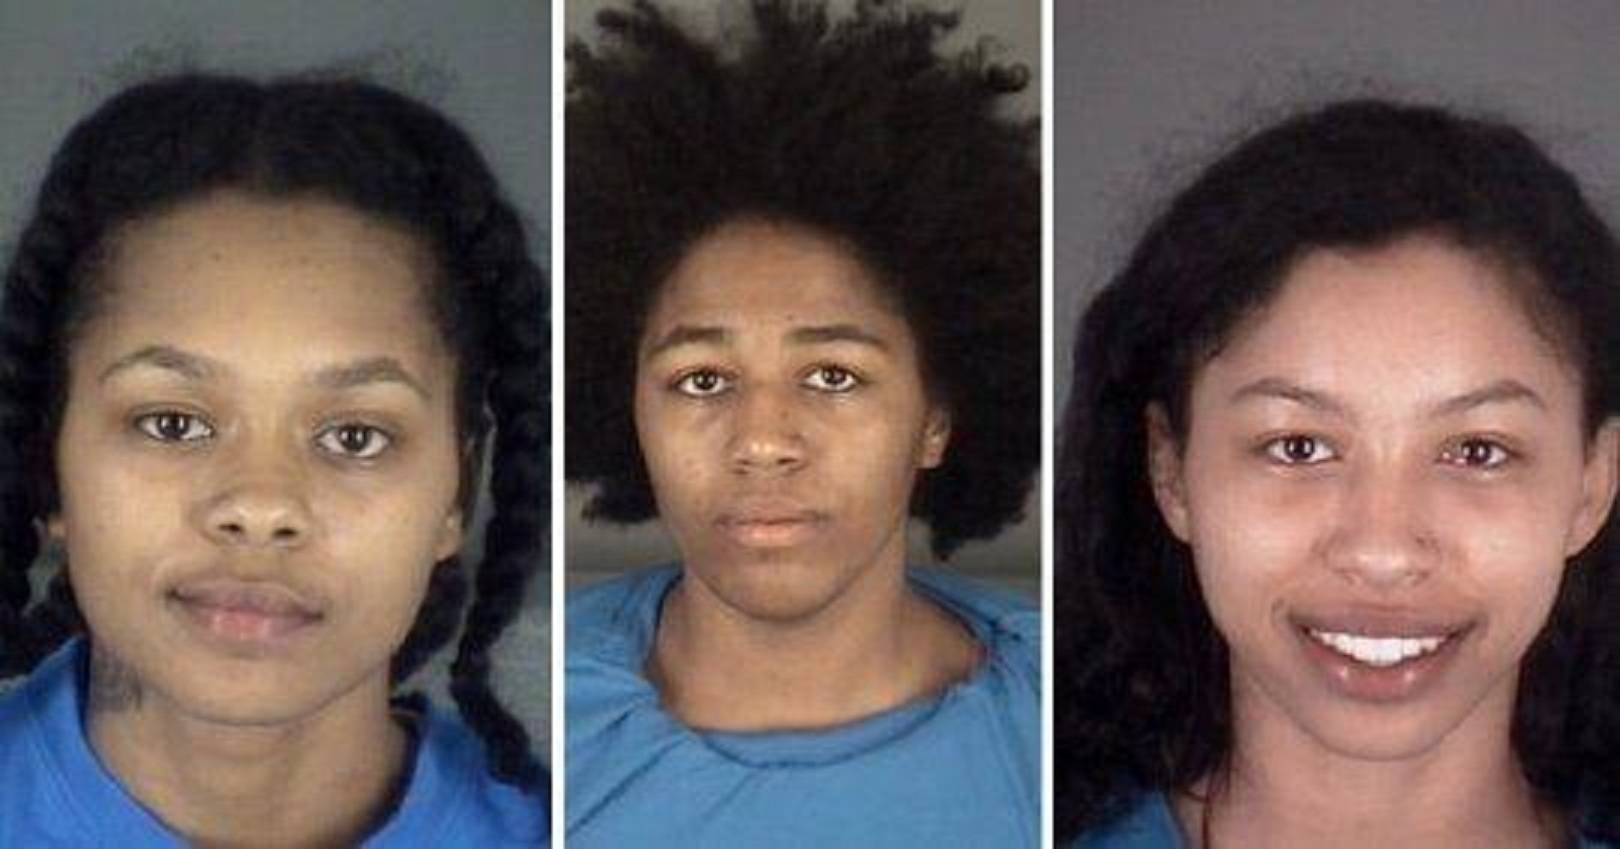 Women Arrested For Driving Naked, Say They Were 'Air-Drying' Themselves